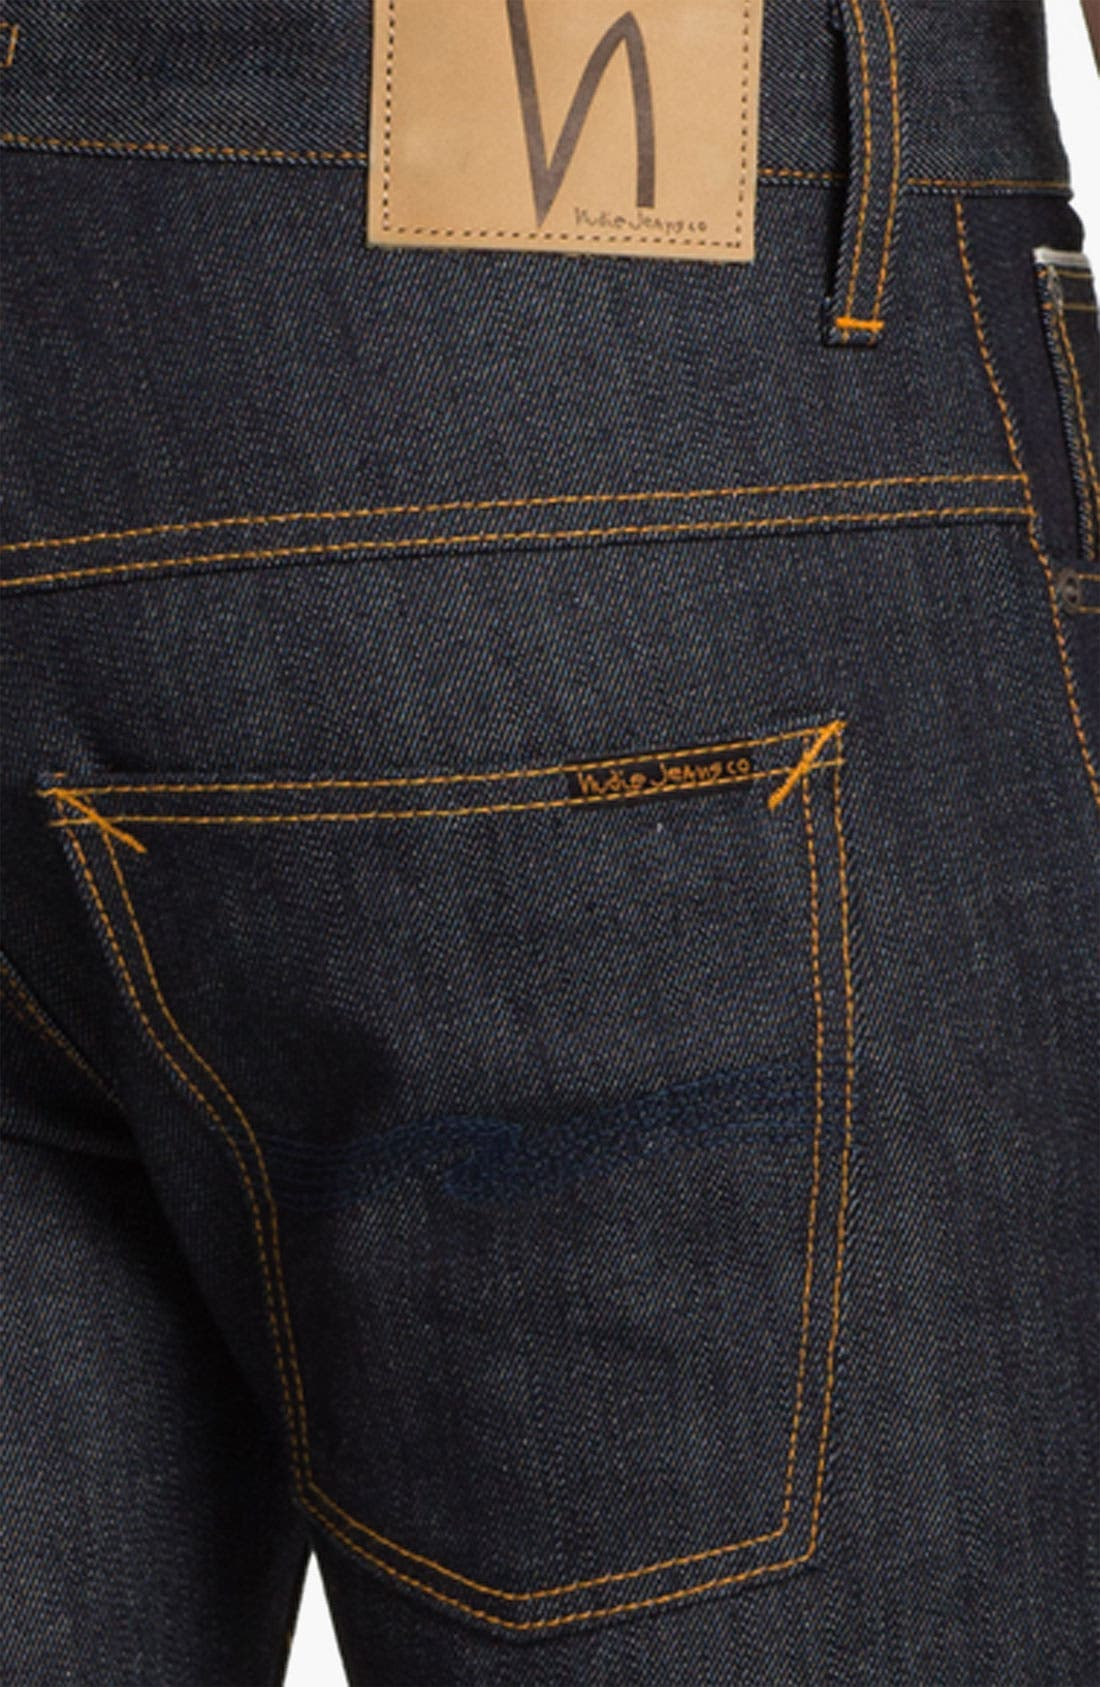 Alternate Image 4  - Nudie 'Thin Finn' Slim Skinny Leg Jeans (Organic Dry Heavy Selvedge)